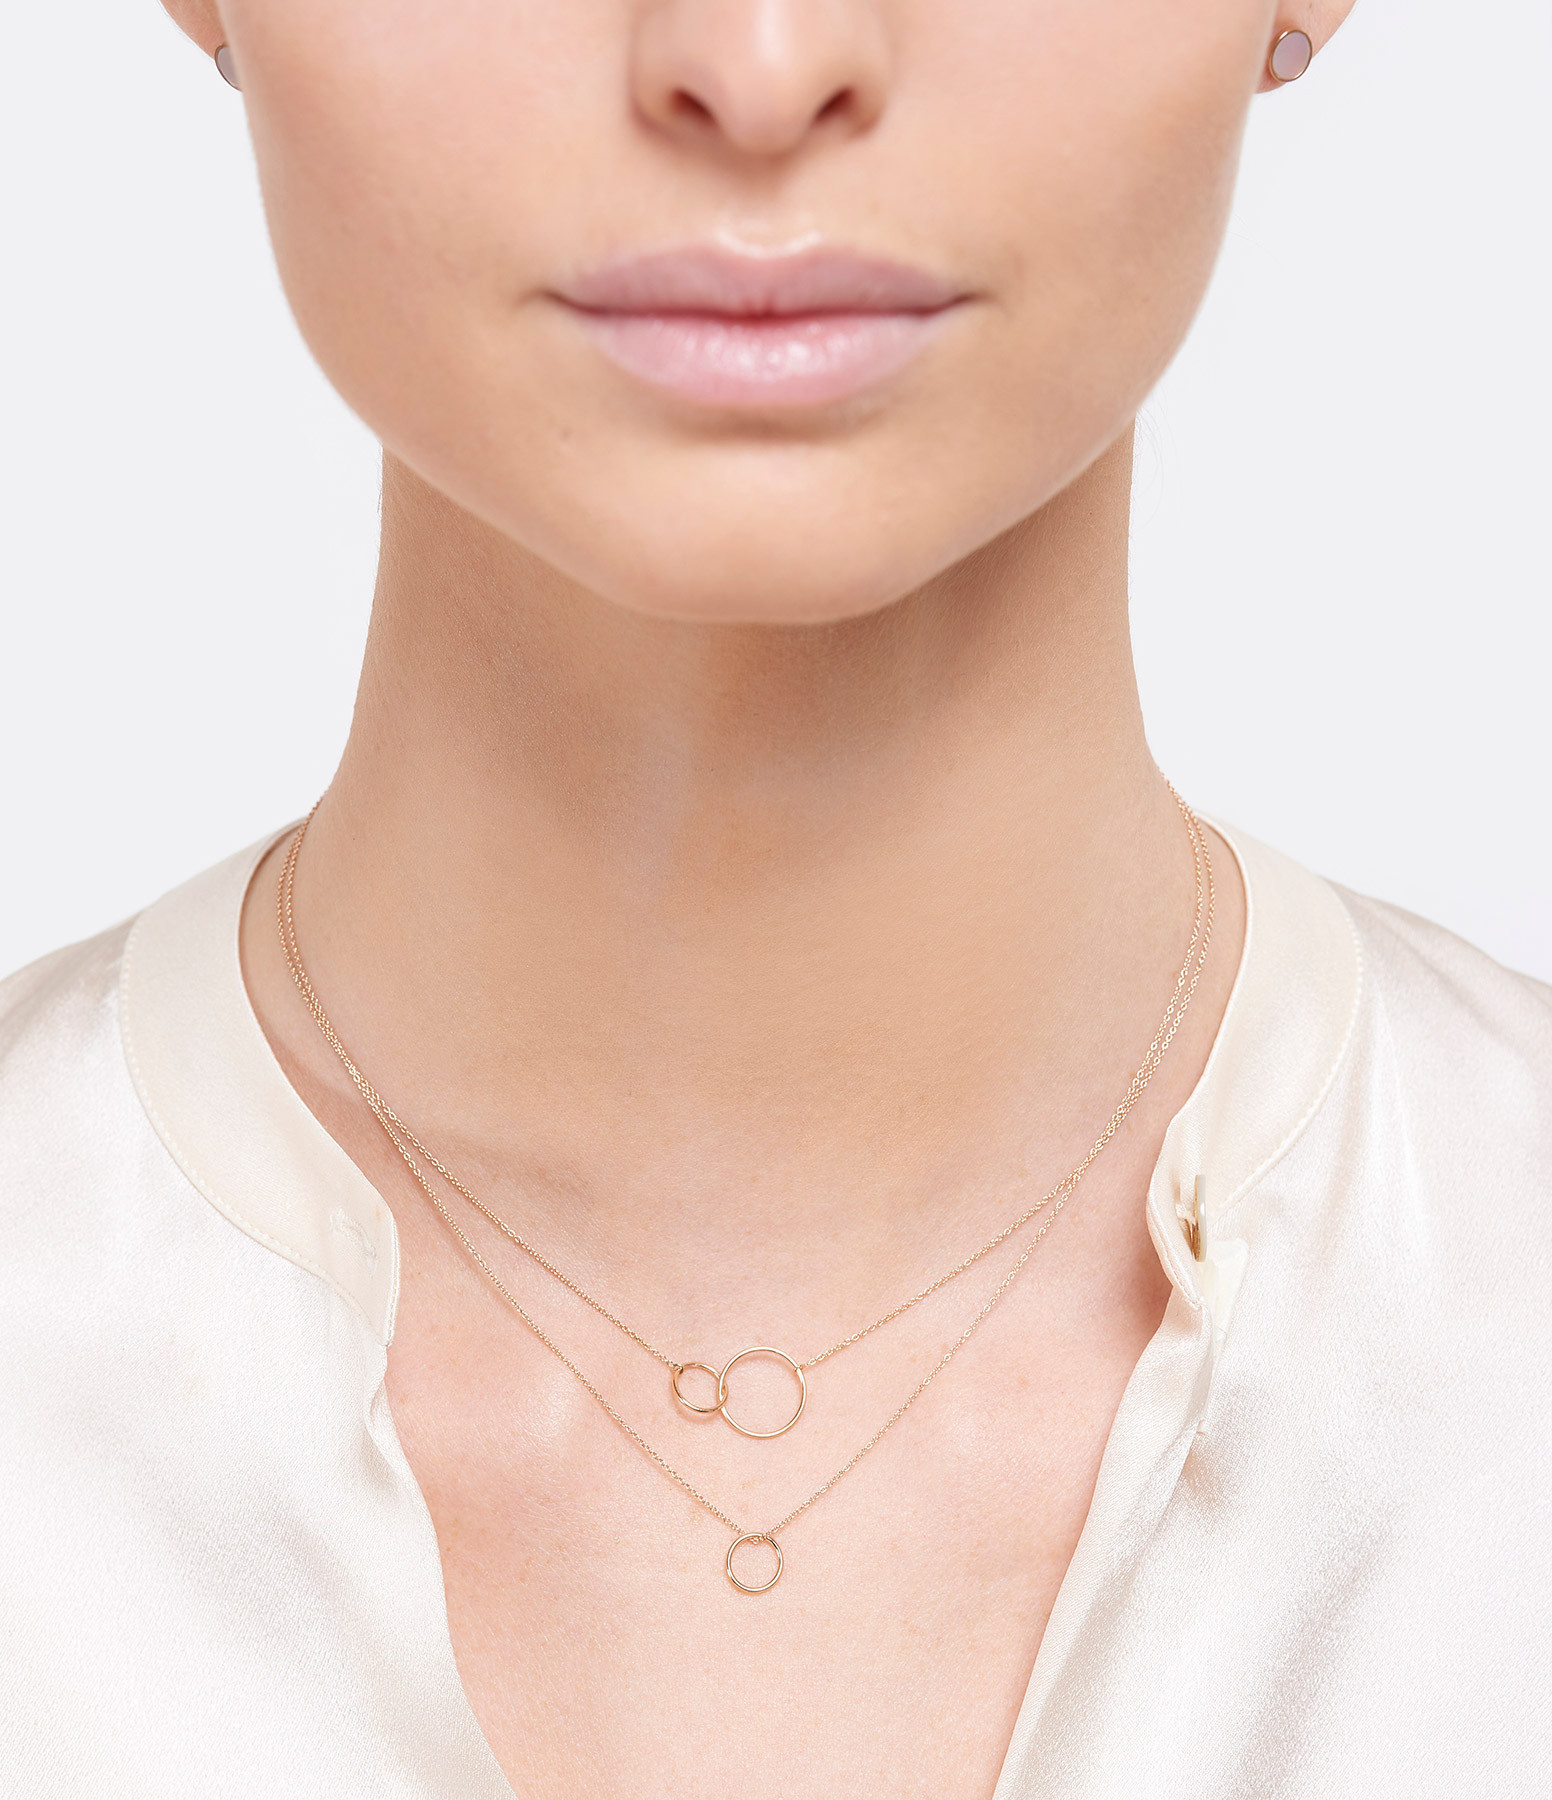 GINETTE NY - Collier Tiny Cercle Or Rose